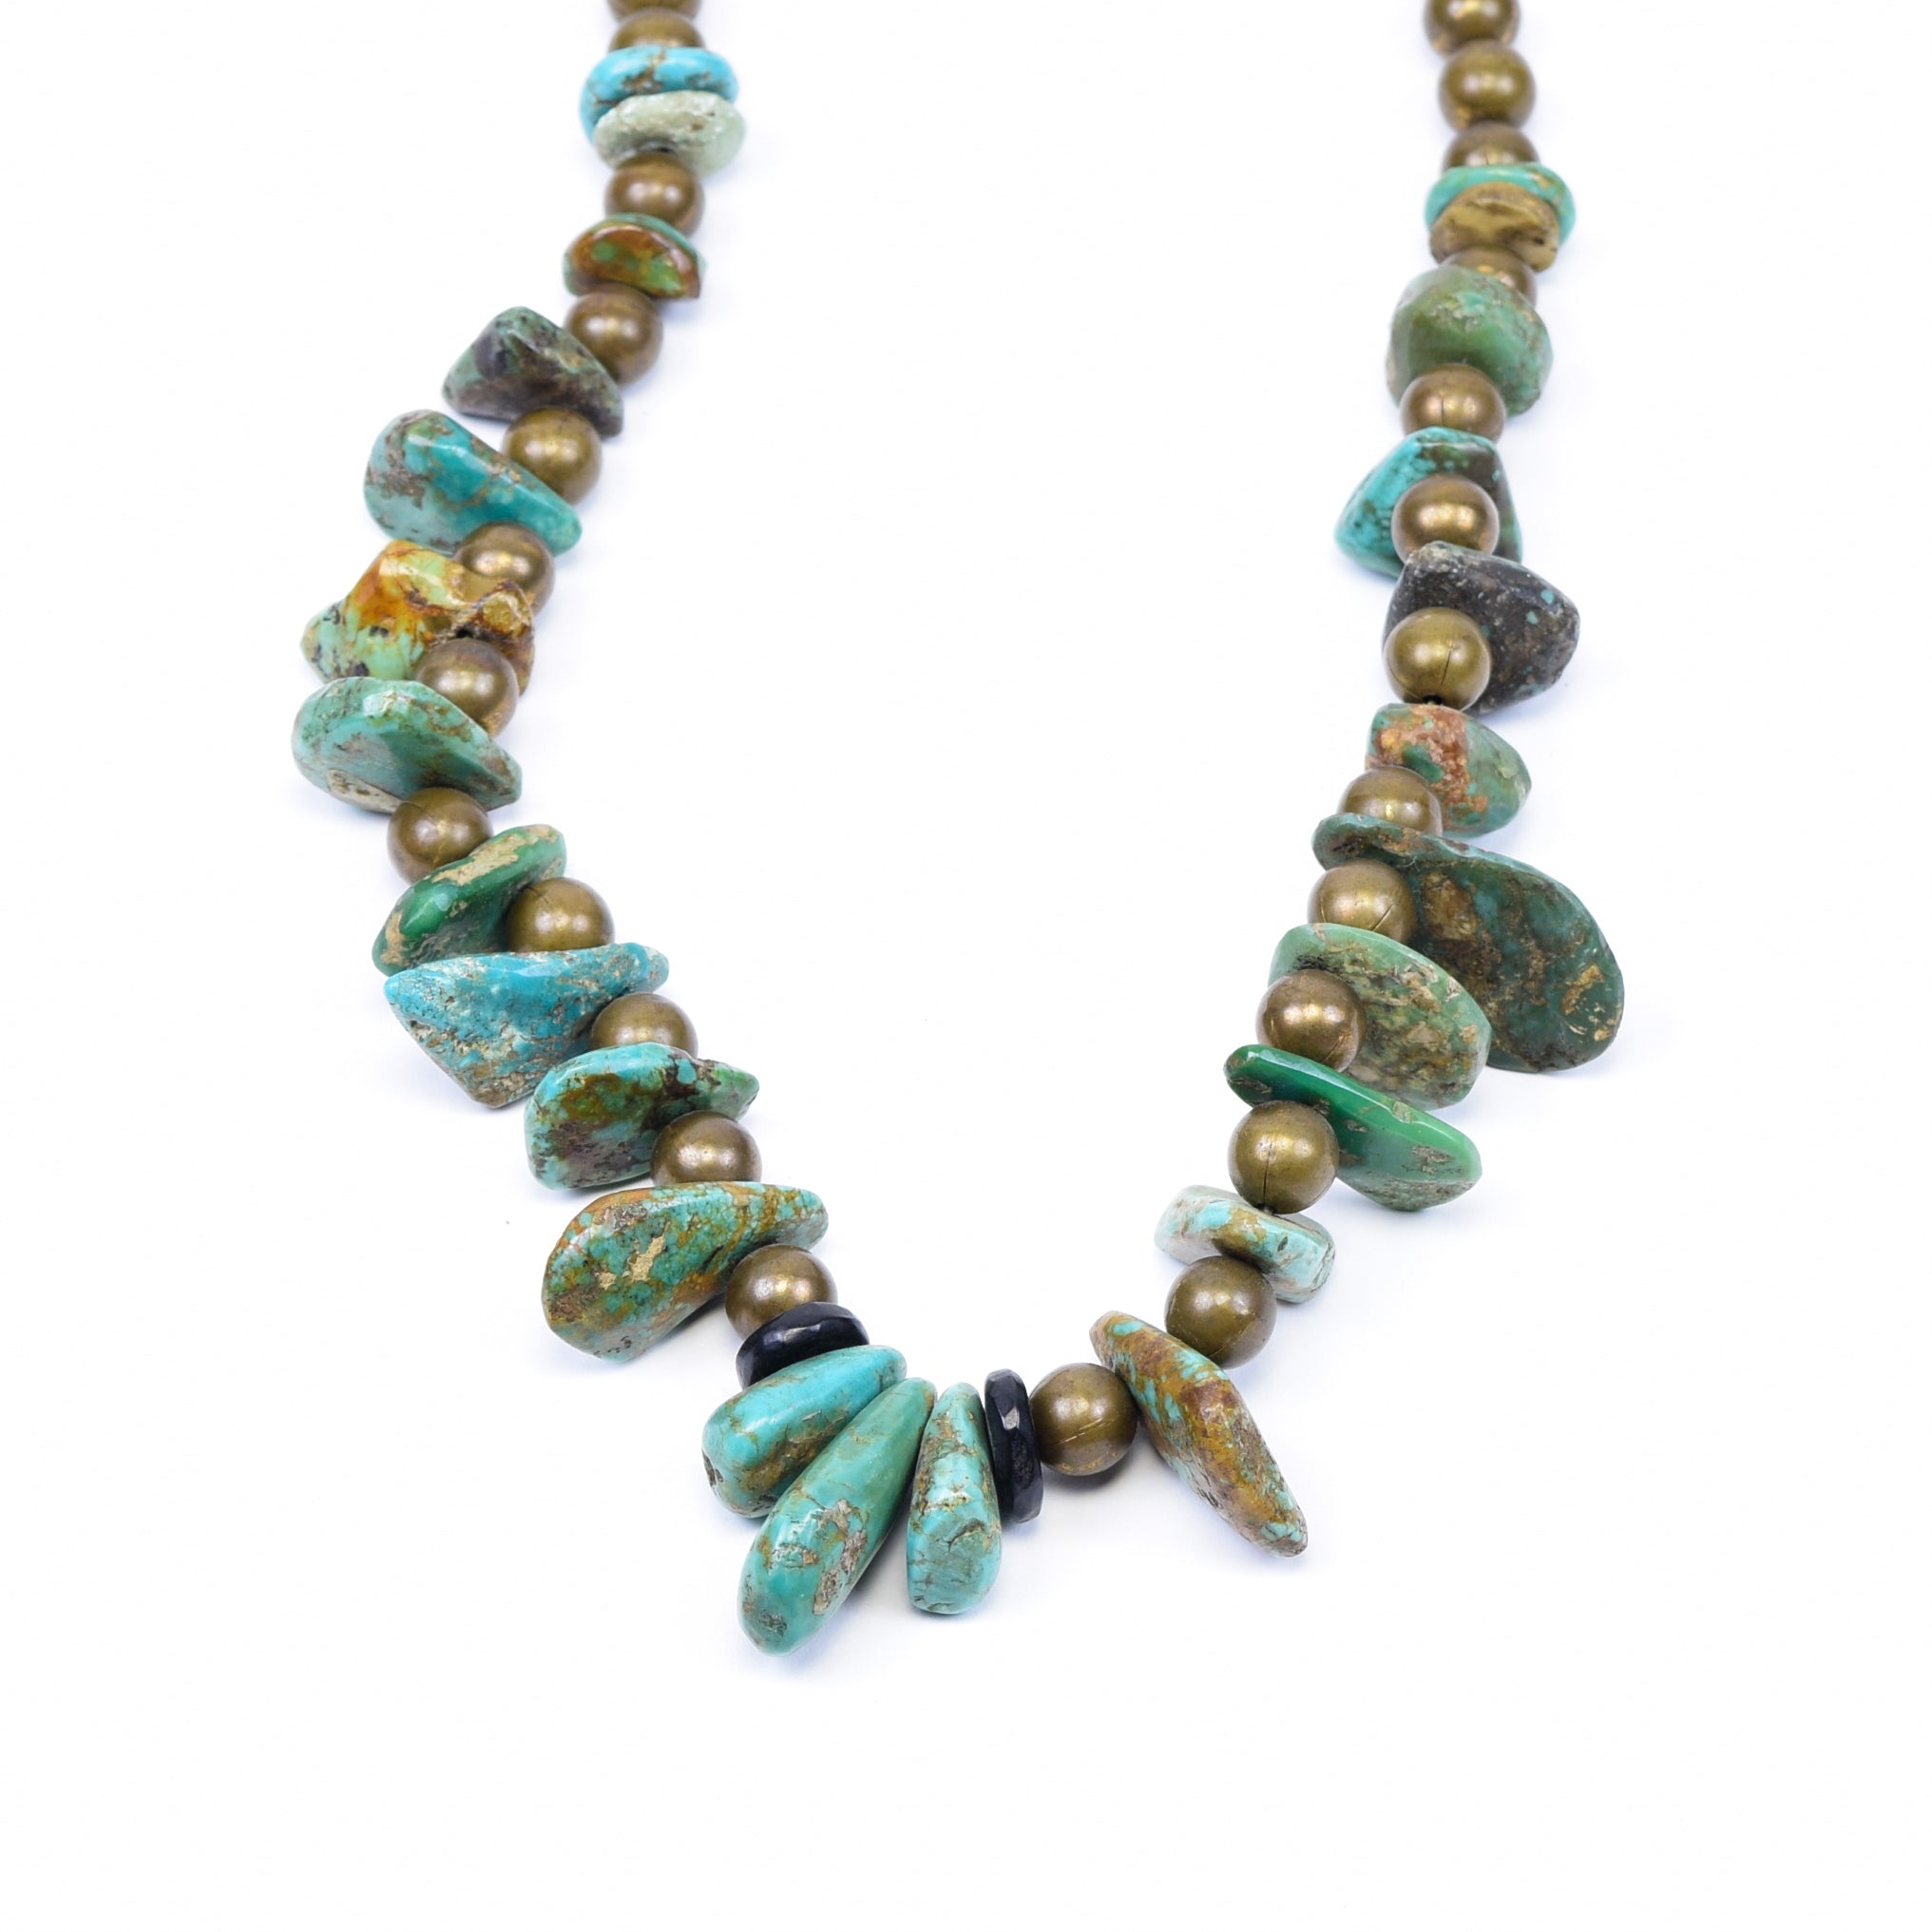 Old Navajo Turquoise Necklace navajo, necklace, old pawn, southwest, turquoise